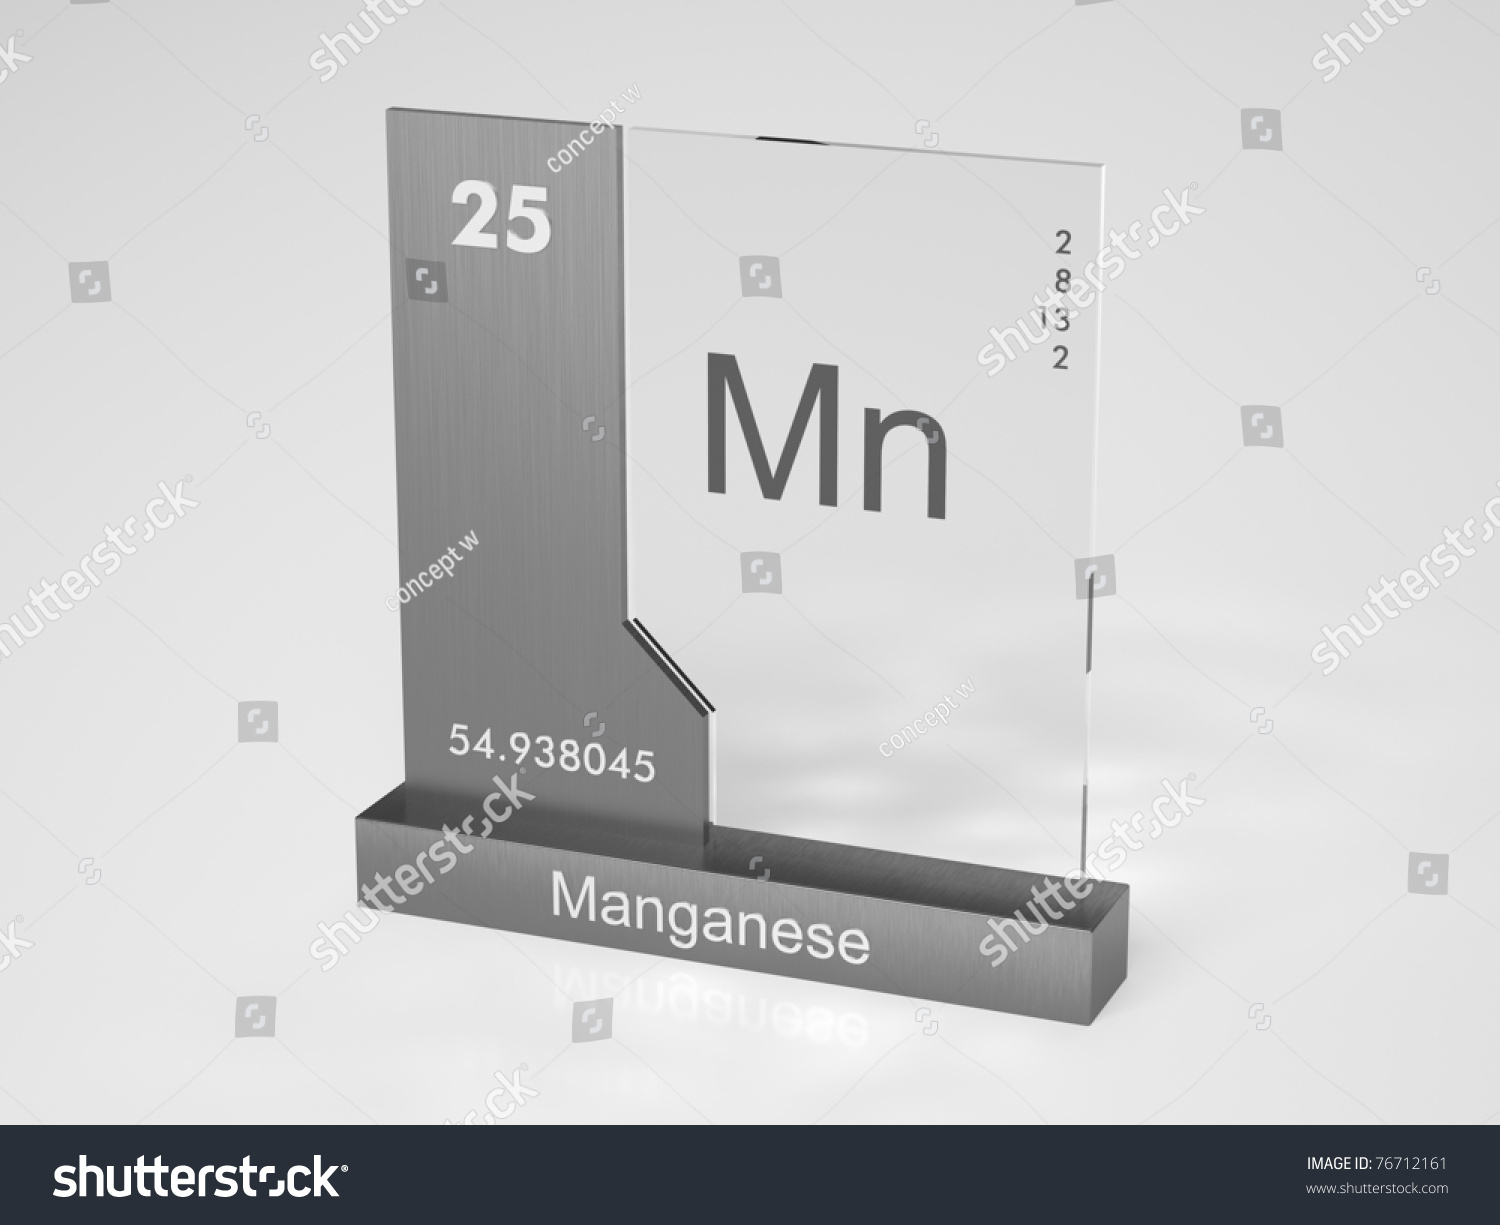 Mn symbol periodic table choice image periodic table images mn symbol periodic table choice image periodic table images manganese symbol mn chemical element periodic stock gamestrikefo Image collections